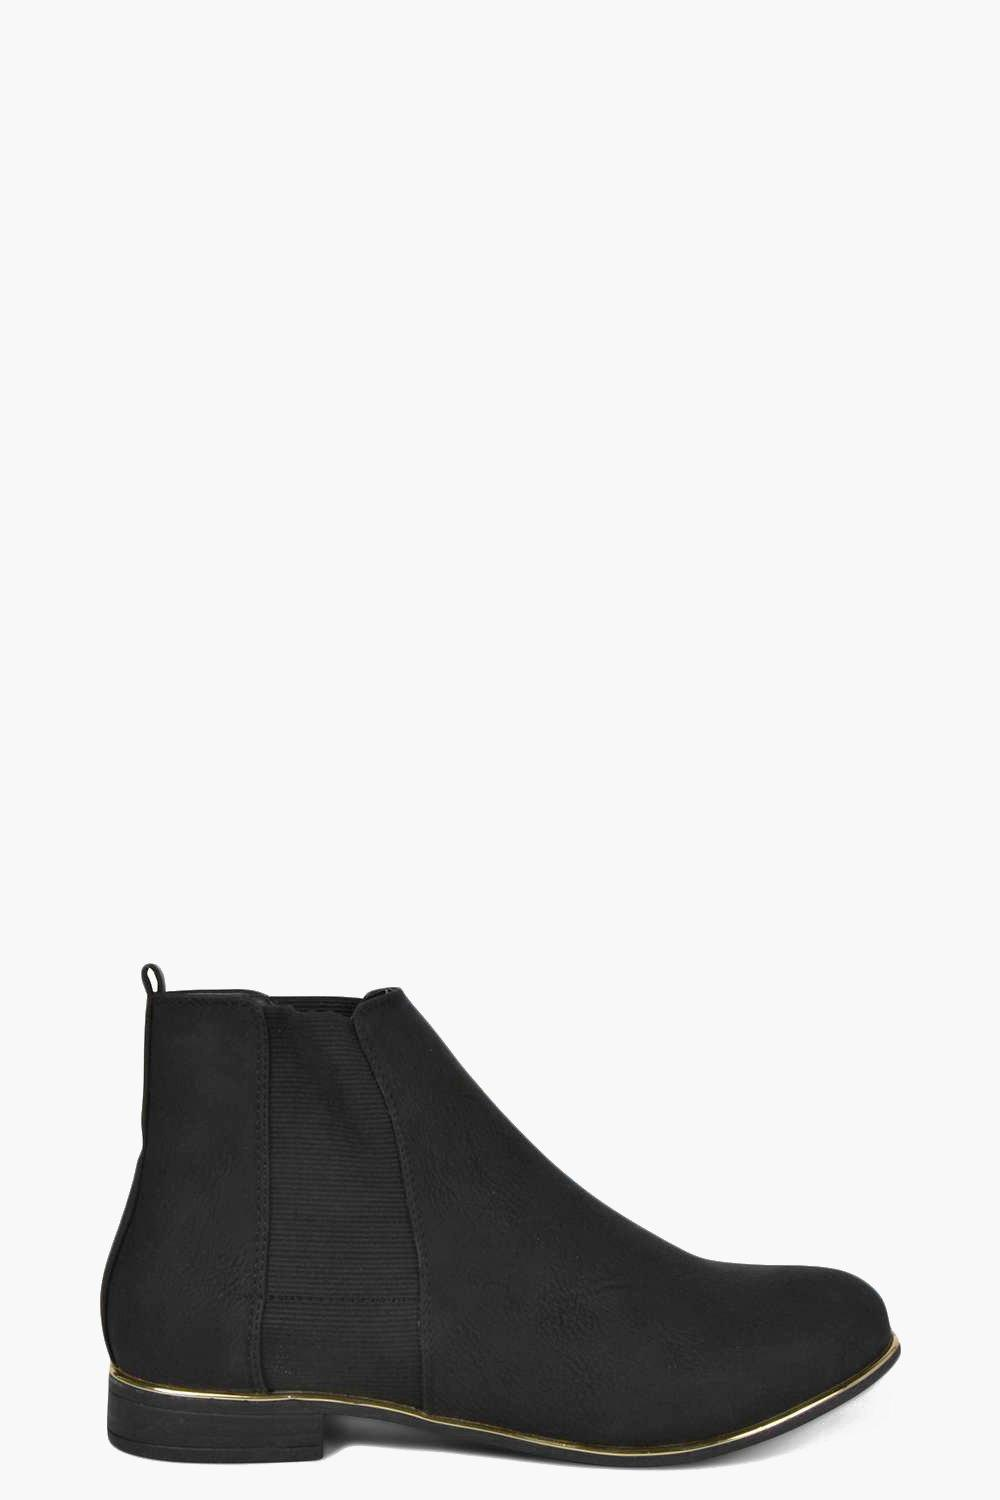 Eva Gold Trim Suedette Chelsea Boot